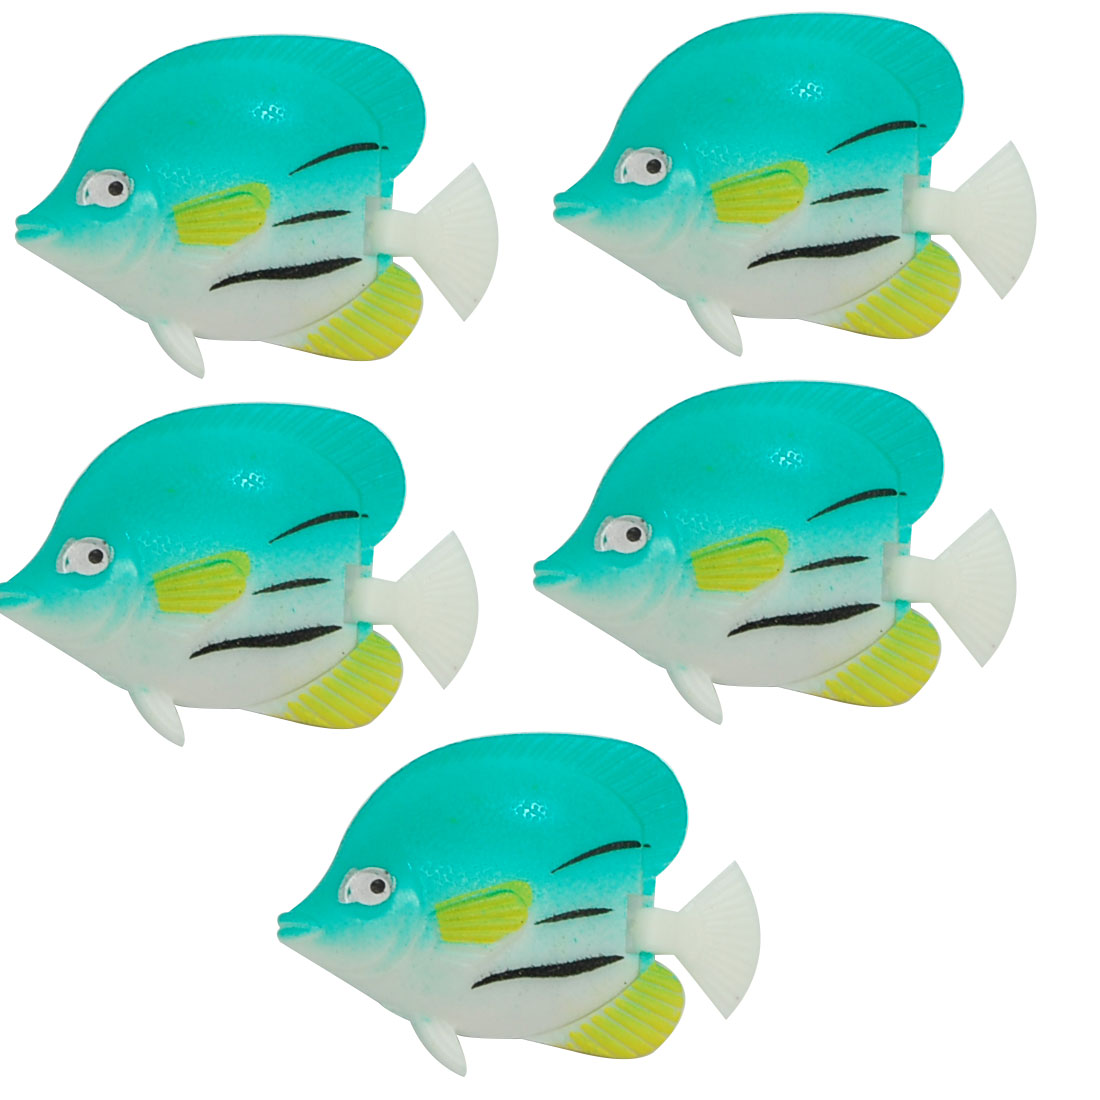 5 Pieces Aquarium Tank Decoration Plastic Floating Fish